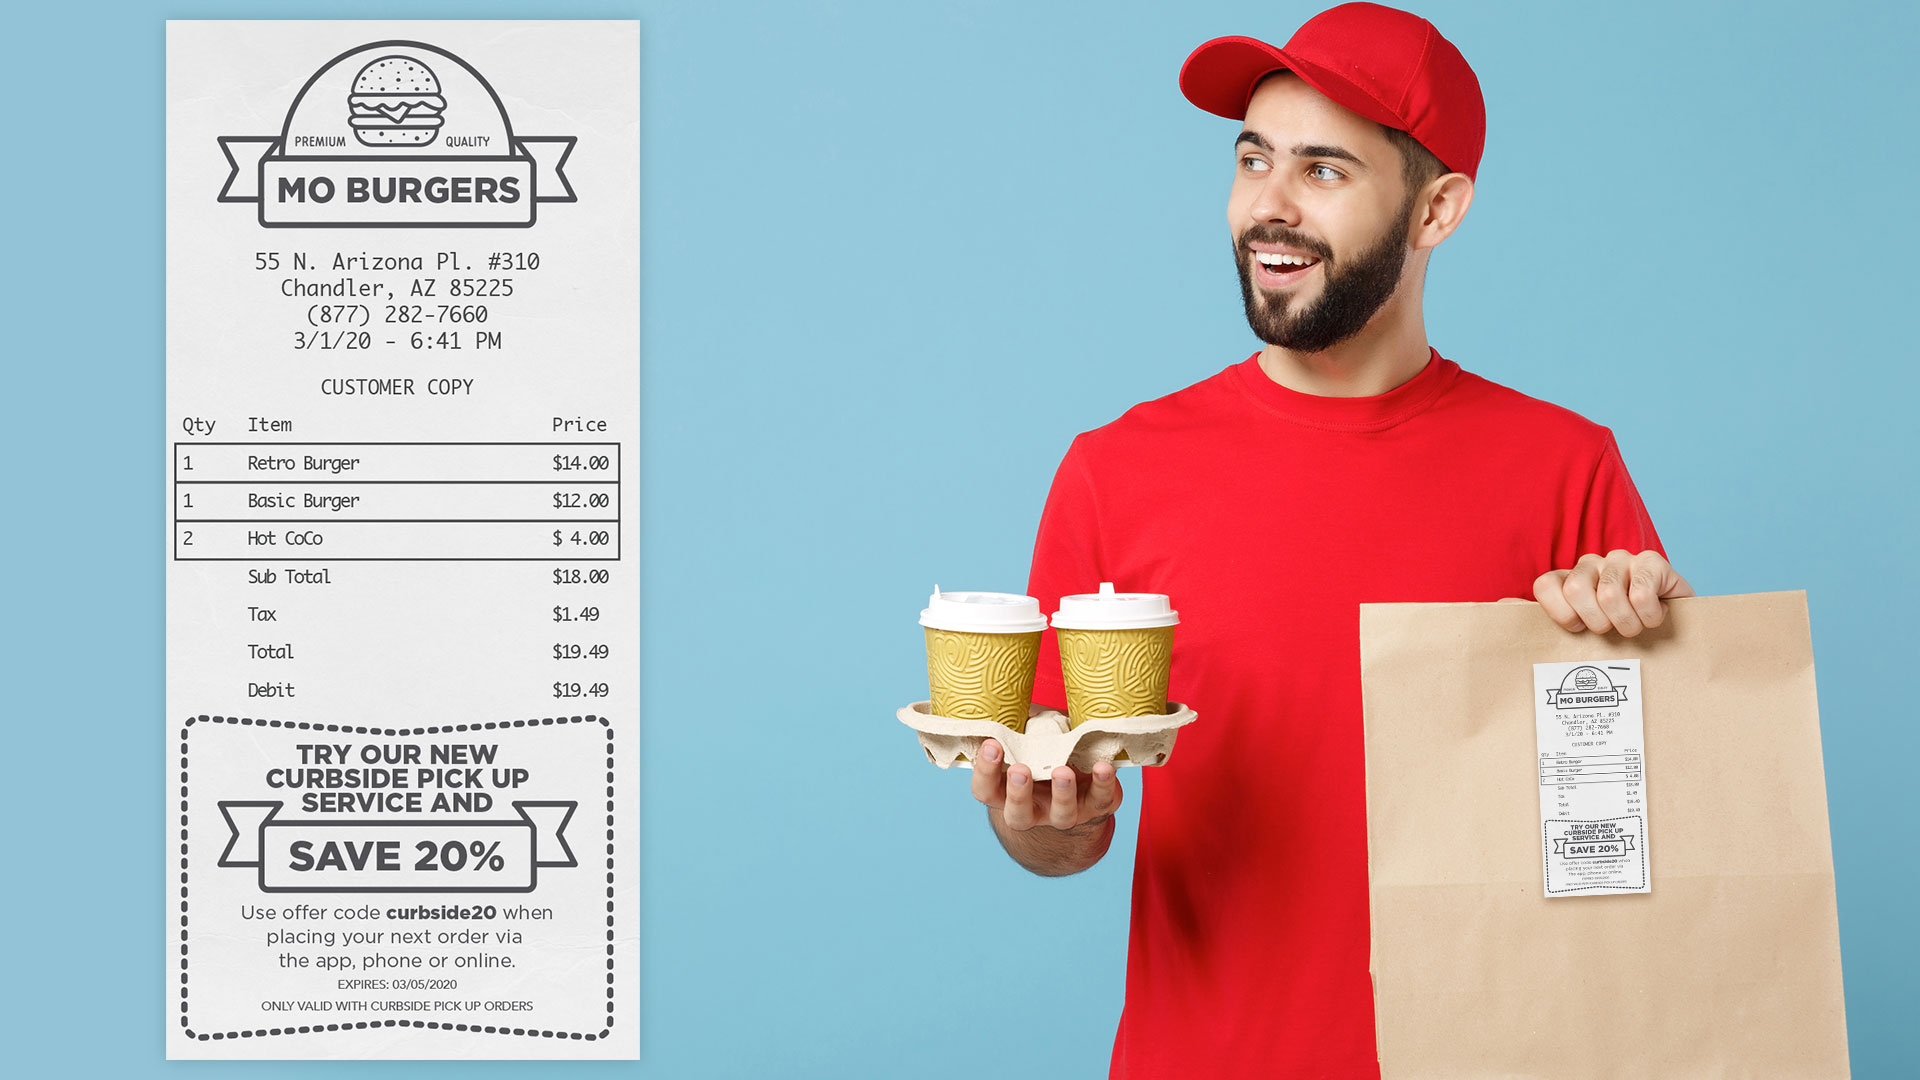 Incentivize customer bounce-backs with a printed receipt offer